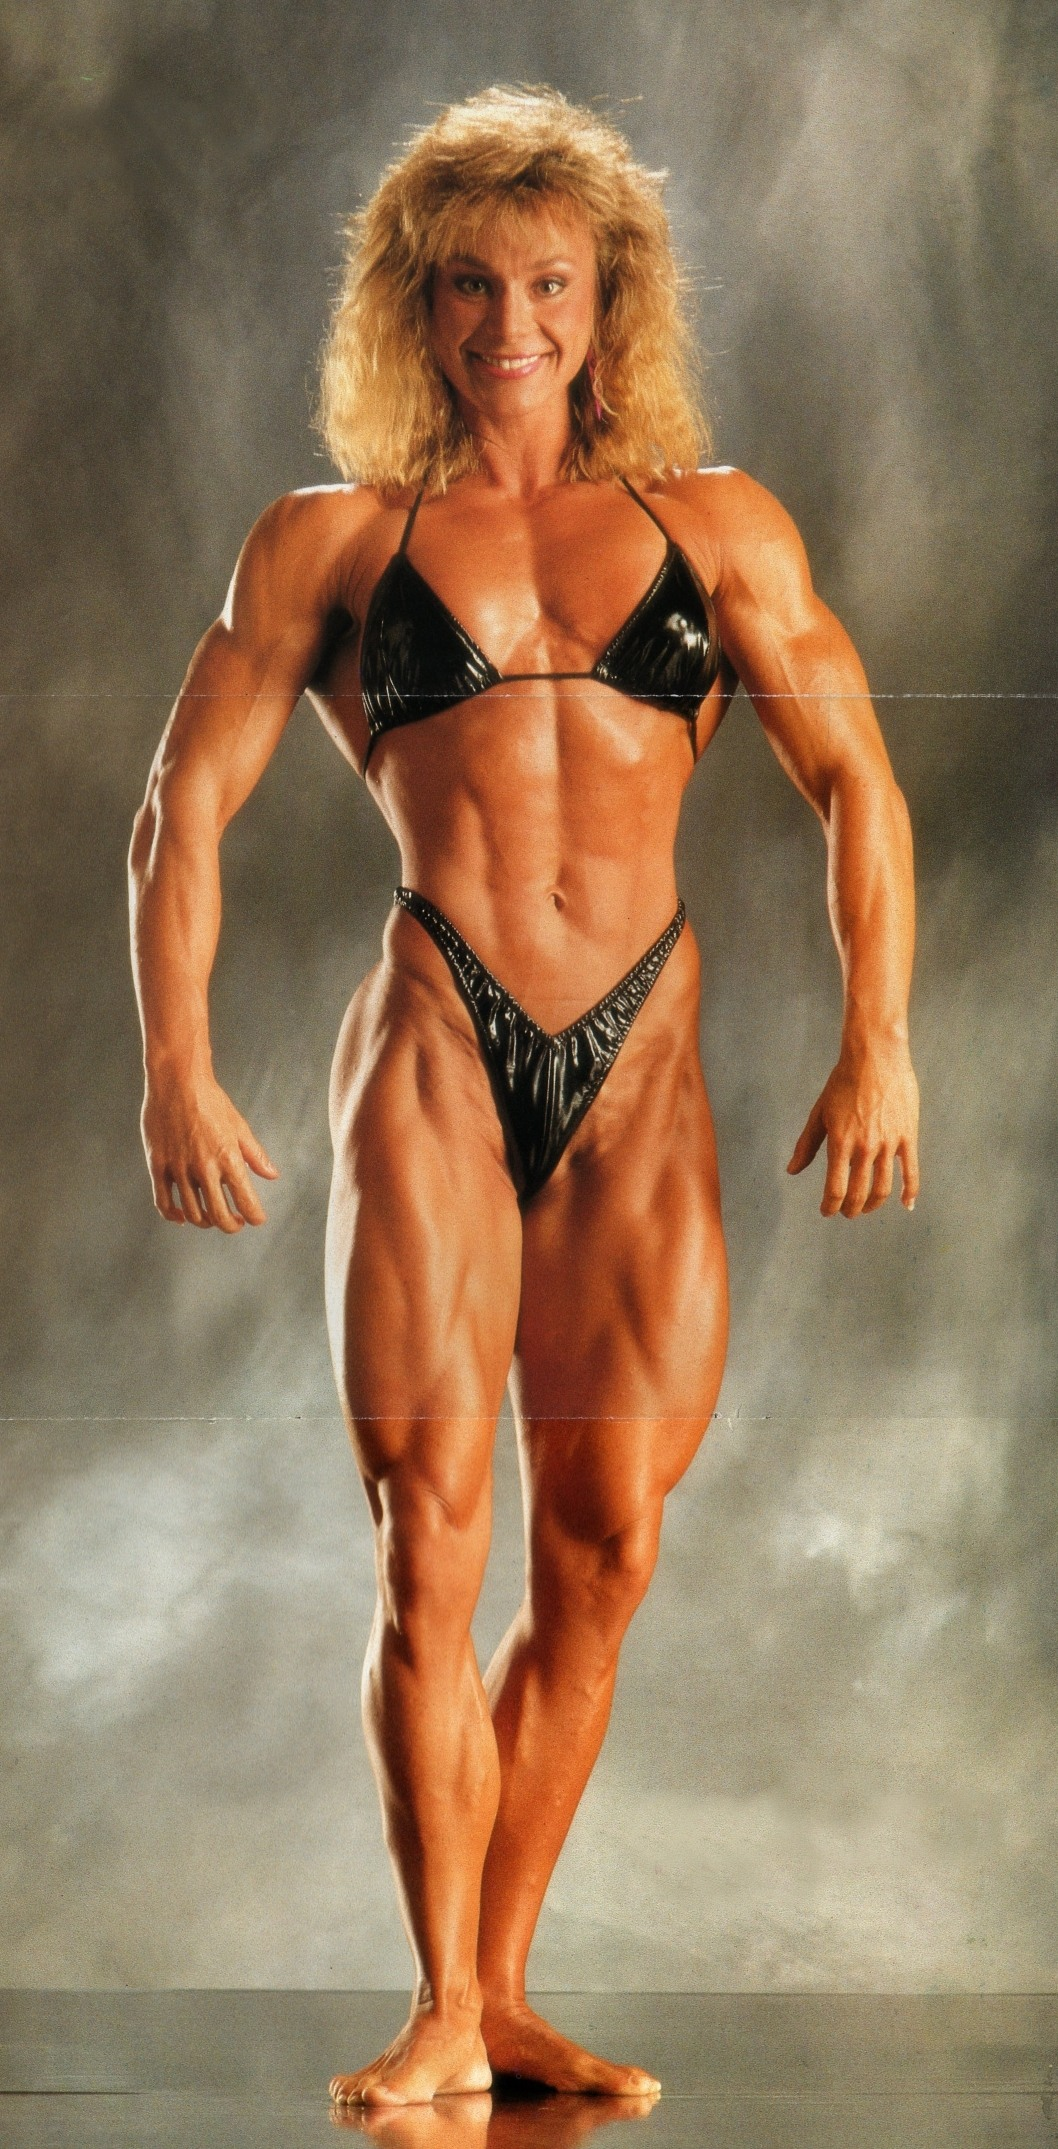 Female bodybuilder cory-5480